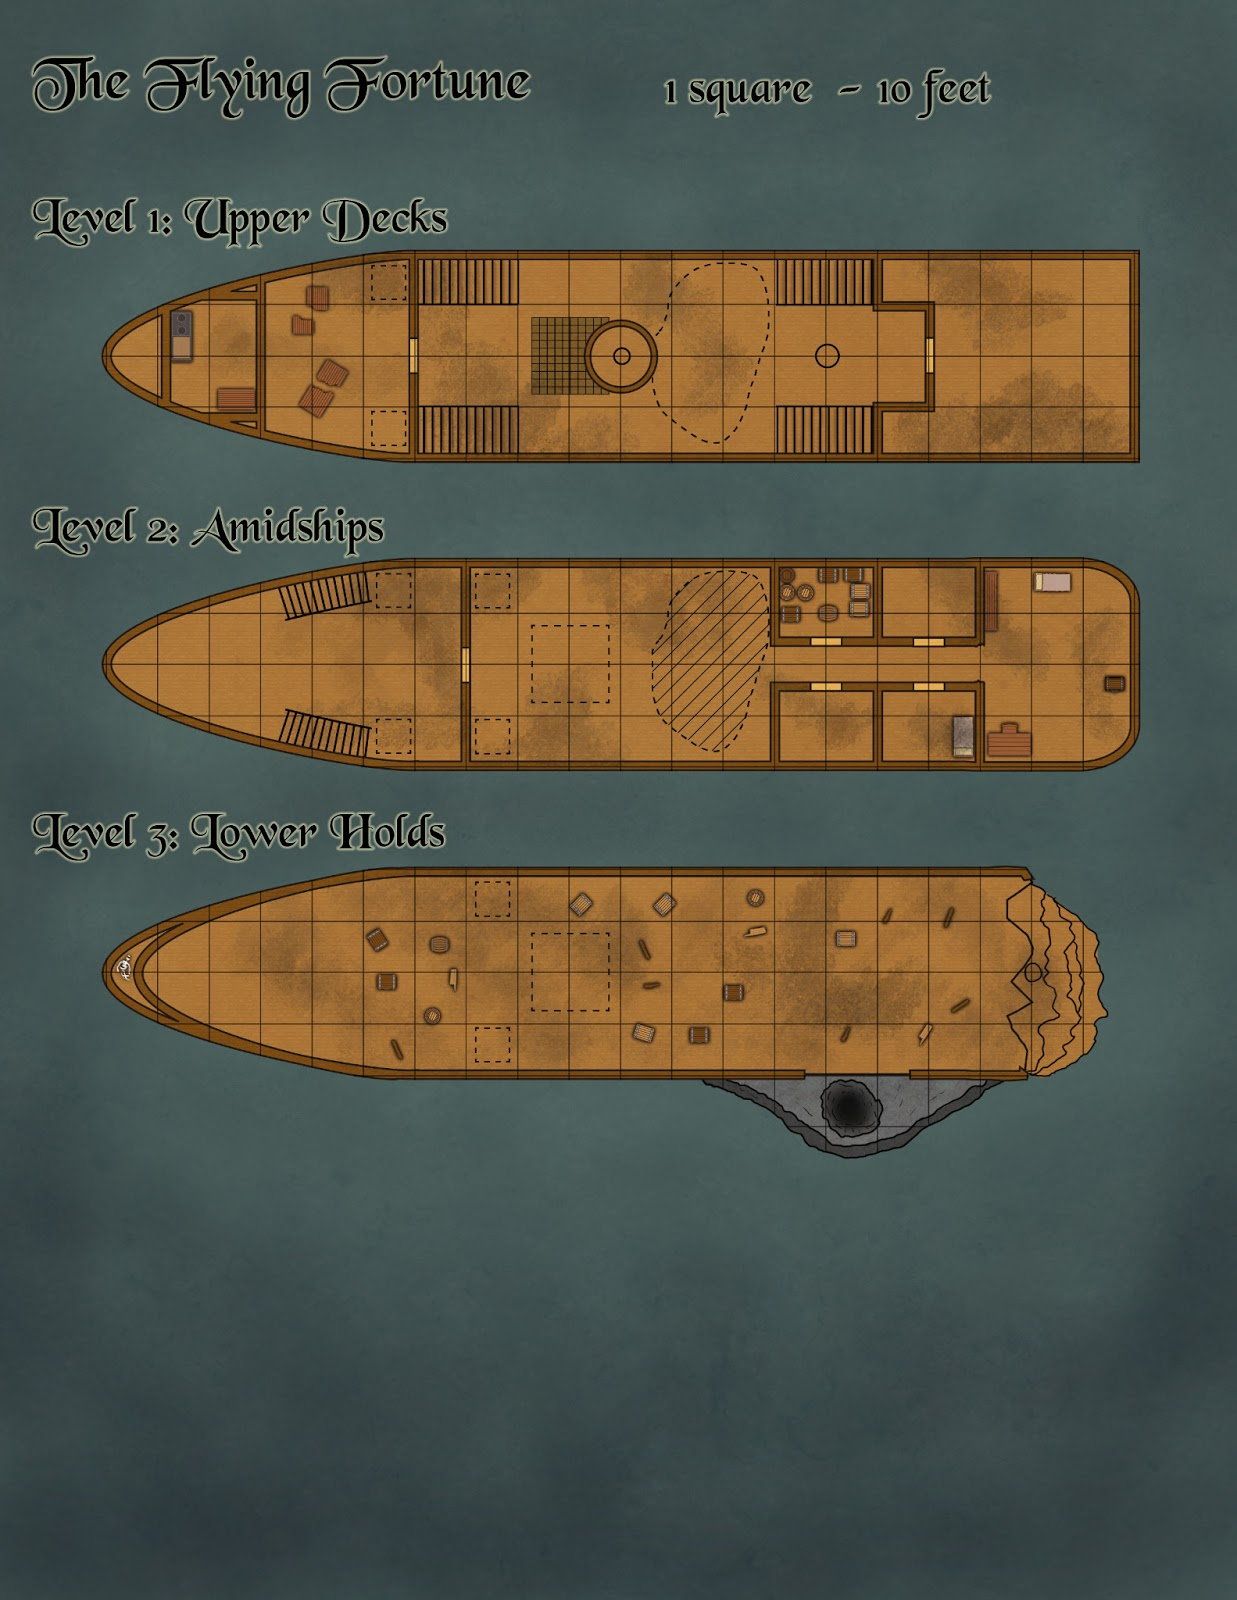 Pirate ship deck plans for Deck plans online